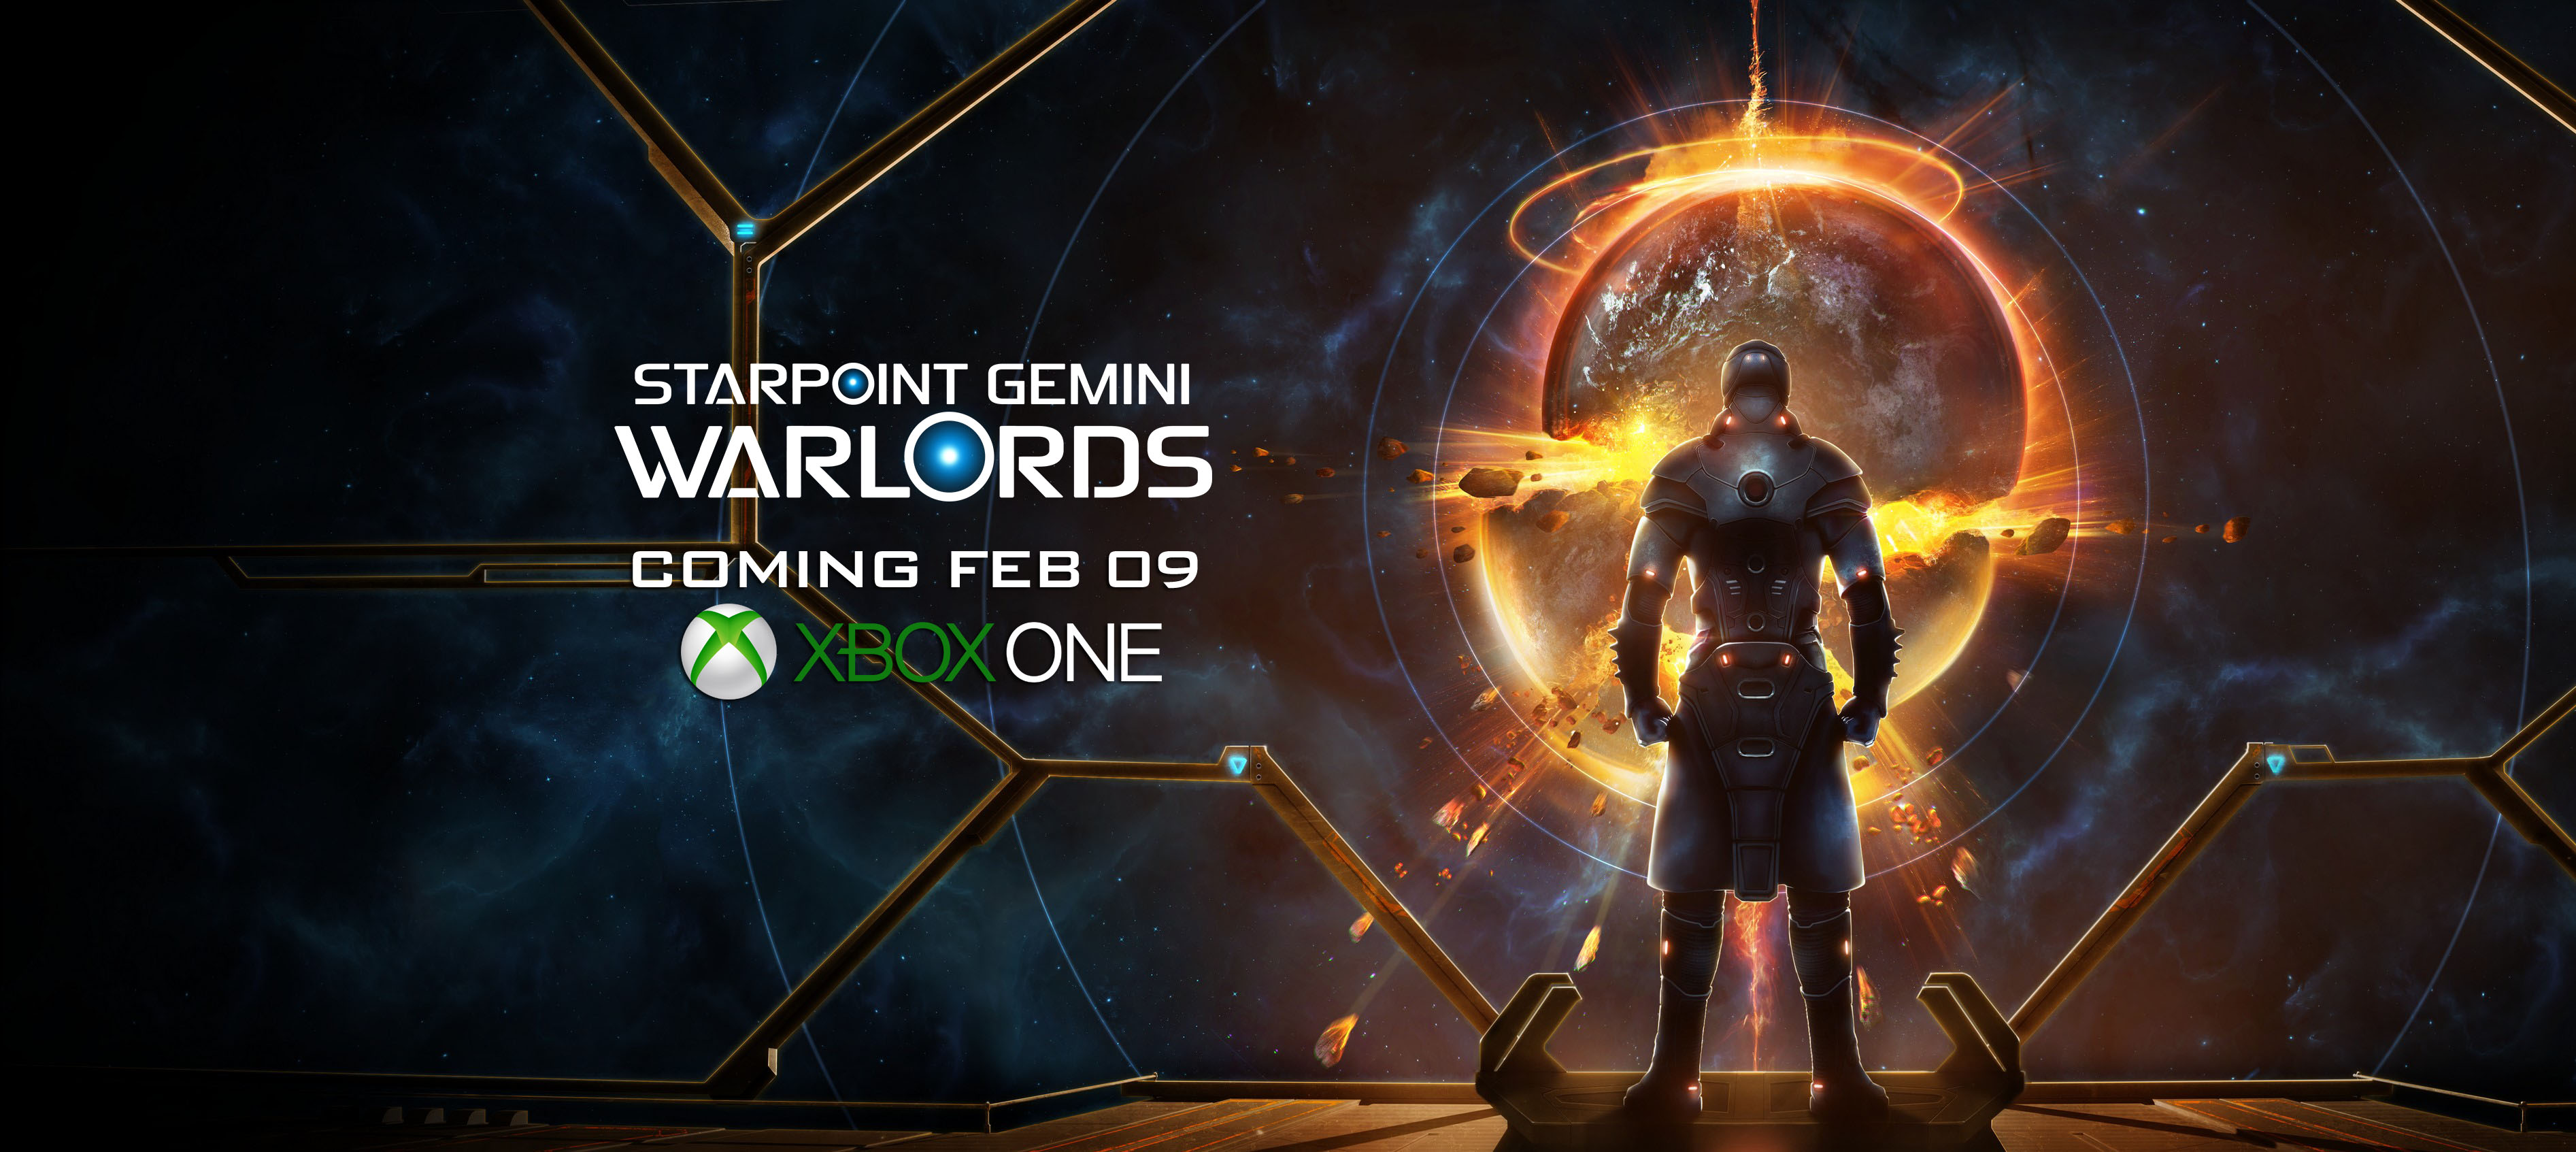 Starpoint gemini warlords command your starship send your war starpoint gemini warlords coming to xbox one malvernweather Image collections